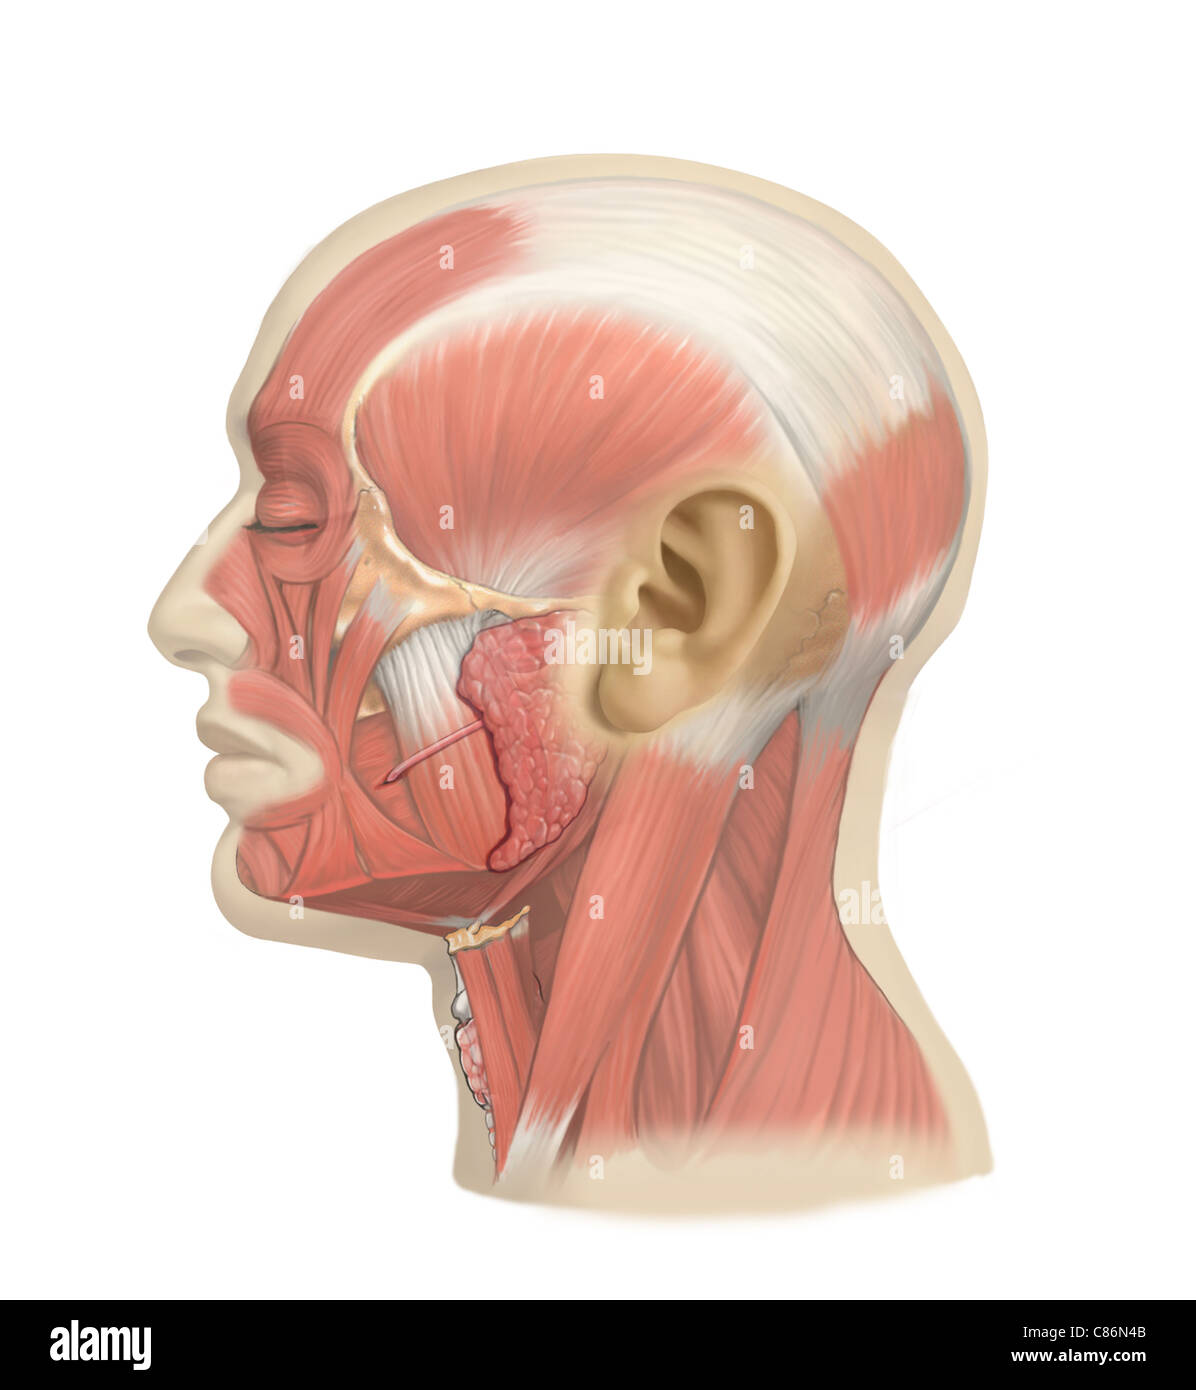 Parotid Gland Stock Photos & Parotid Gland Stock Images - Alamy